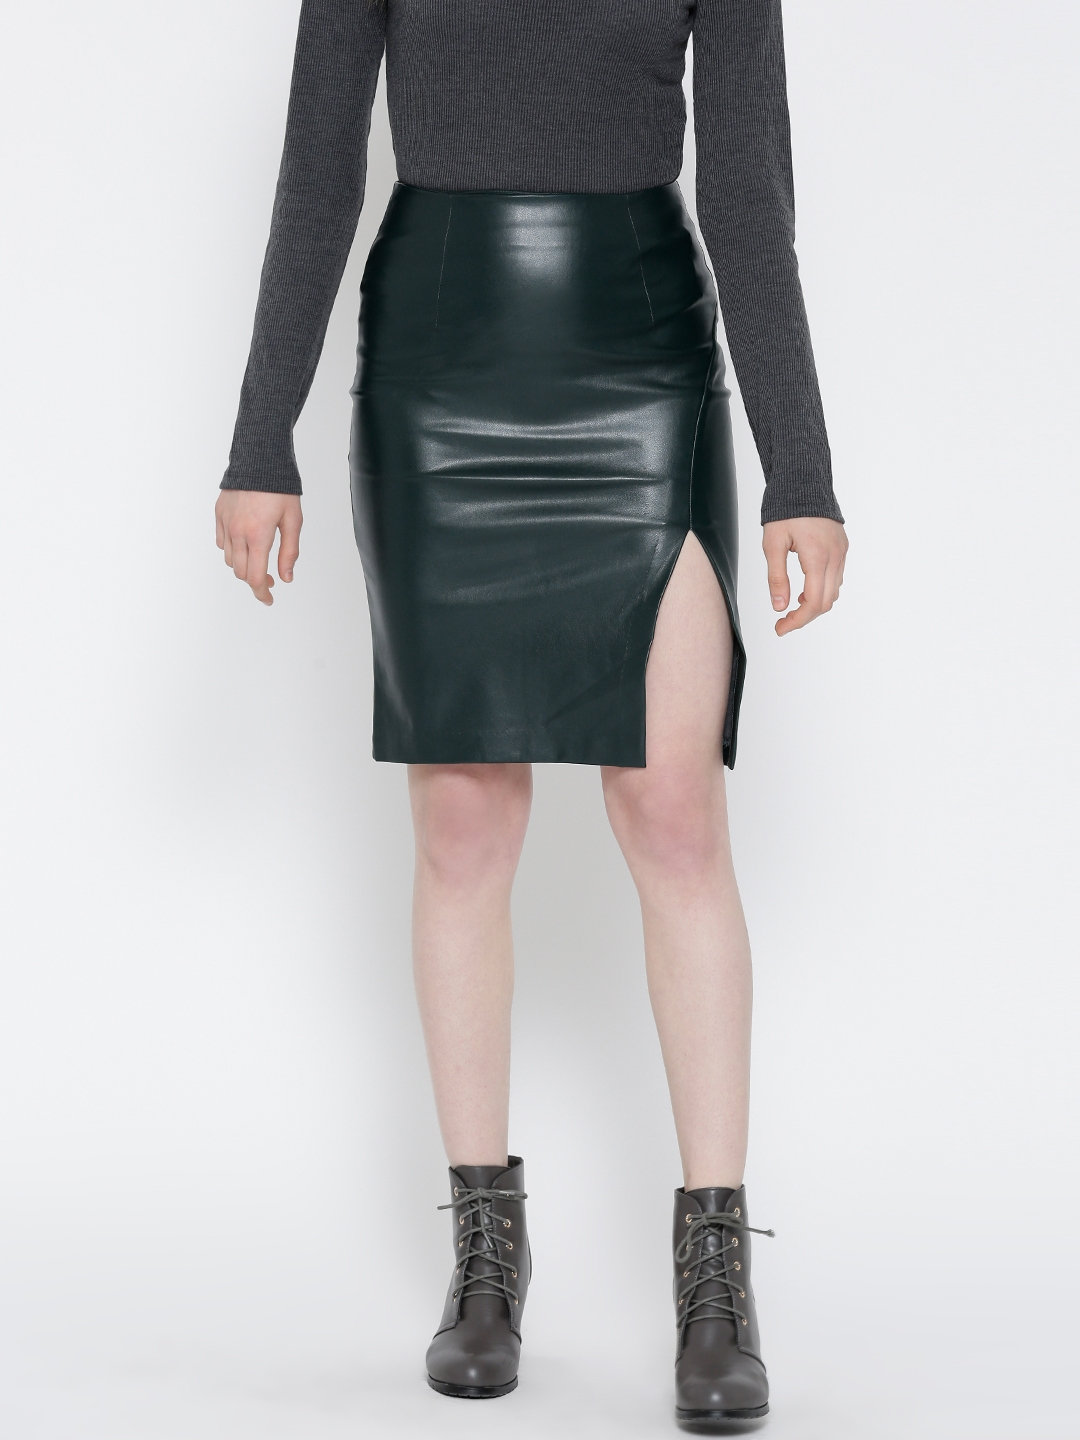 official supplier meet rock-bottom price FOREVER 21 Green Faux Leather Pencil Skirt